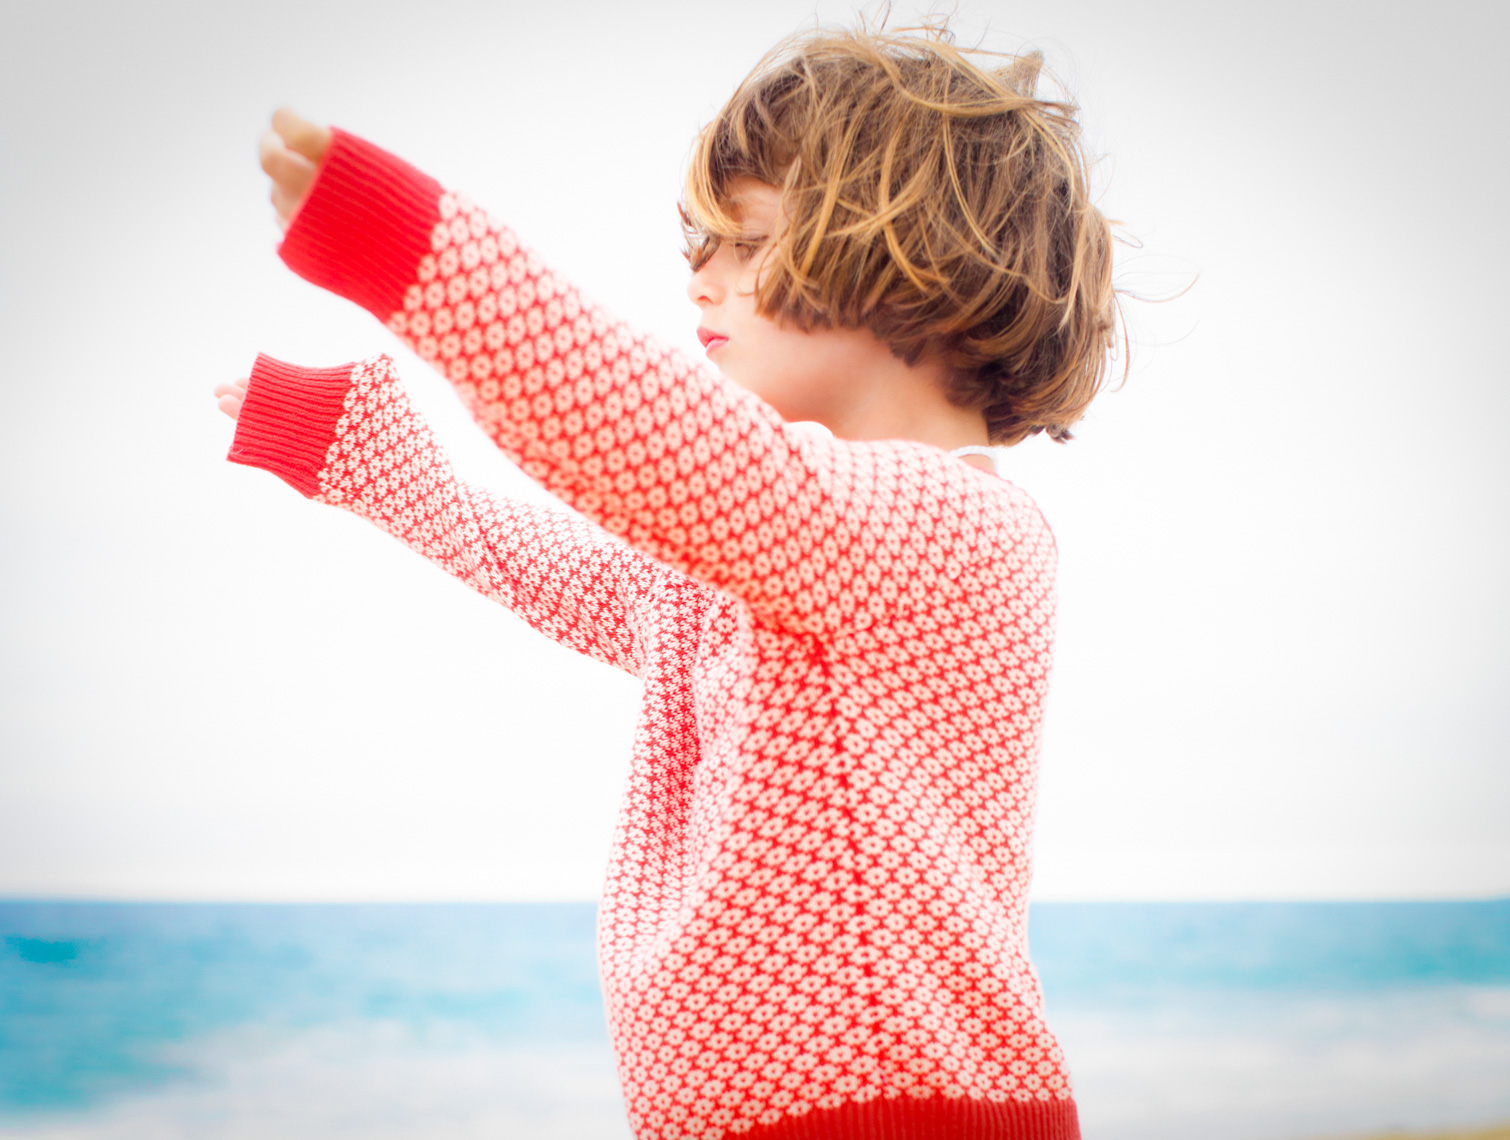 Lifestyle image of child on beach | Tosca Radigonda Photography